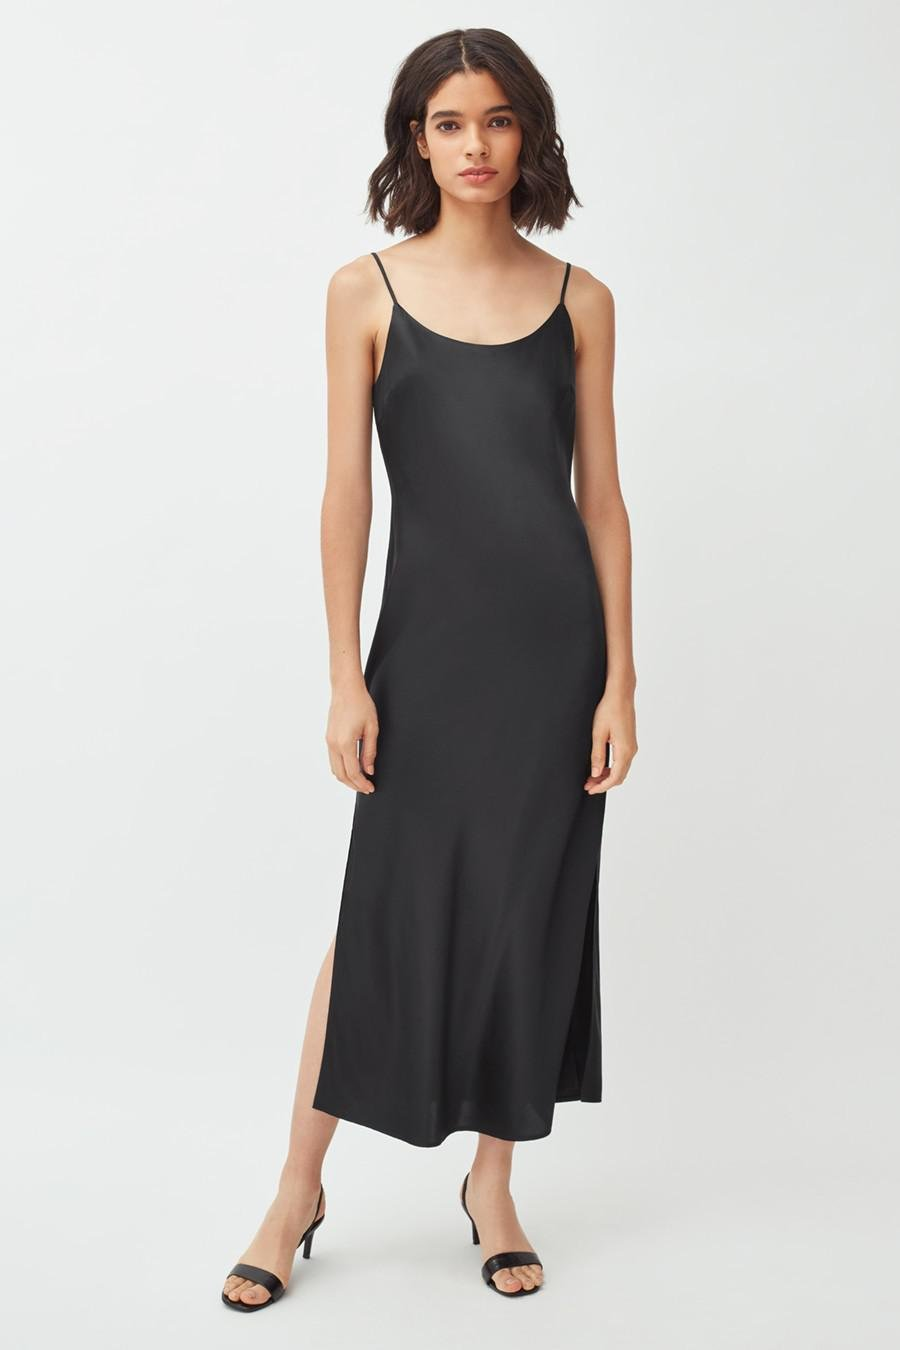 Women's Charmeuse Slip Dress in Black   Size: Large   Silk Charmeuse by Cuyana 1